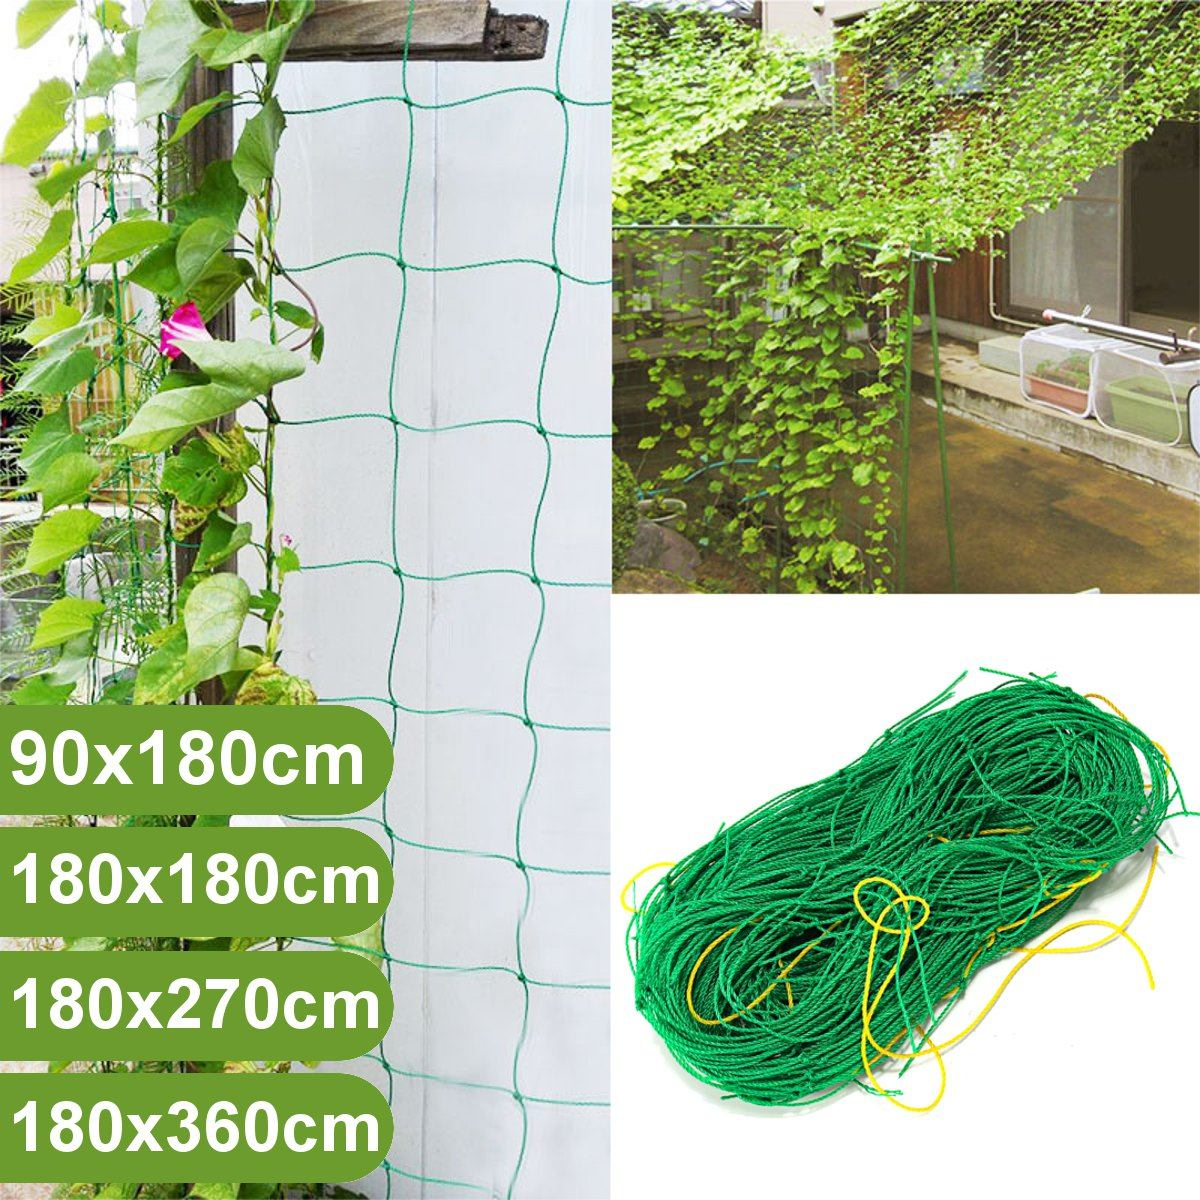 Garden Green Nylon Trellises Net Plant Climbing Support Grow Fence Garden Netting Decoration Plant Support Care Tools 4 Sizes